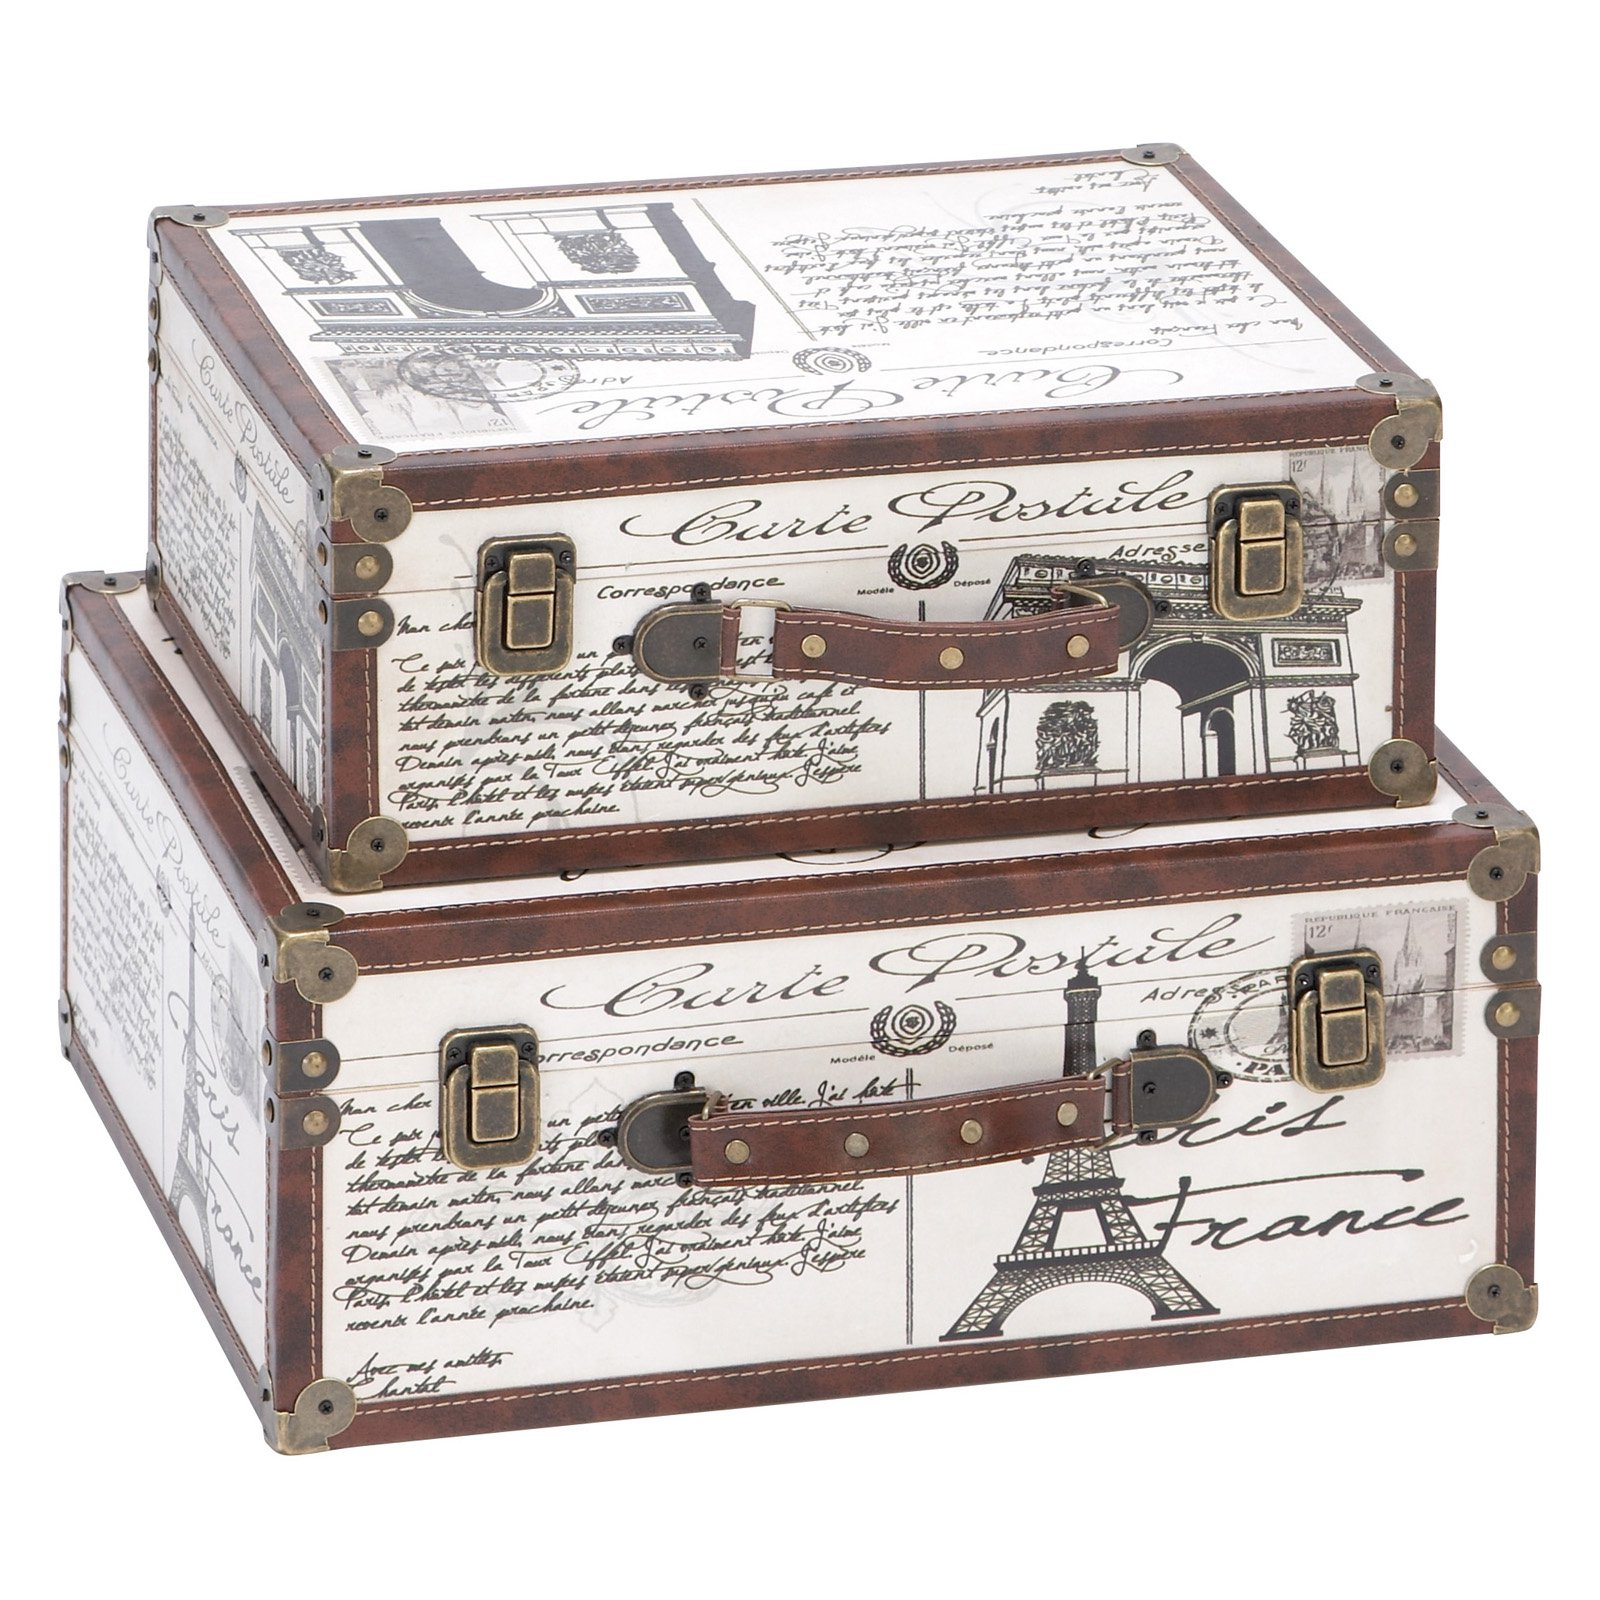 DecMode Wood and Leather Printed Decorative Box - Set of 2